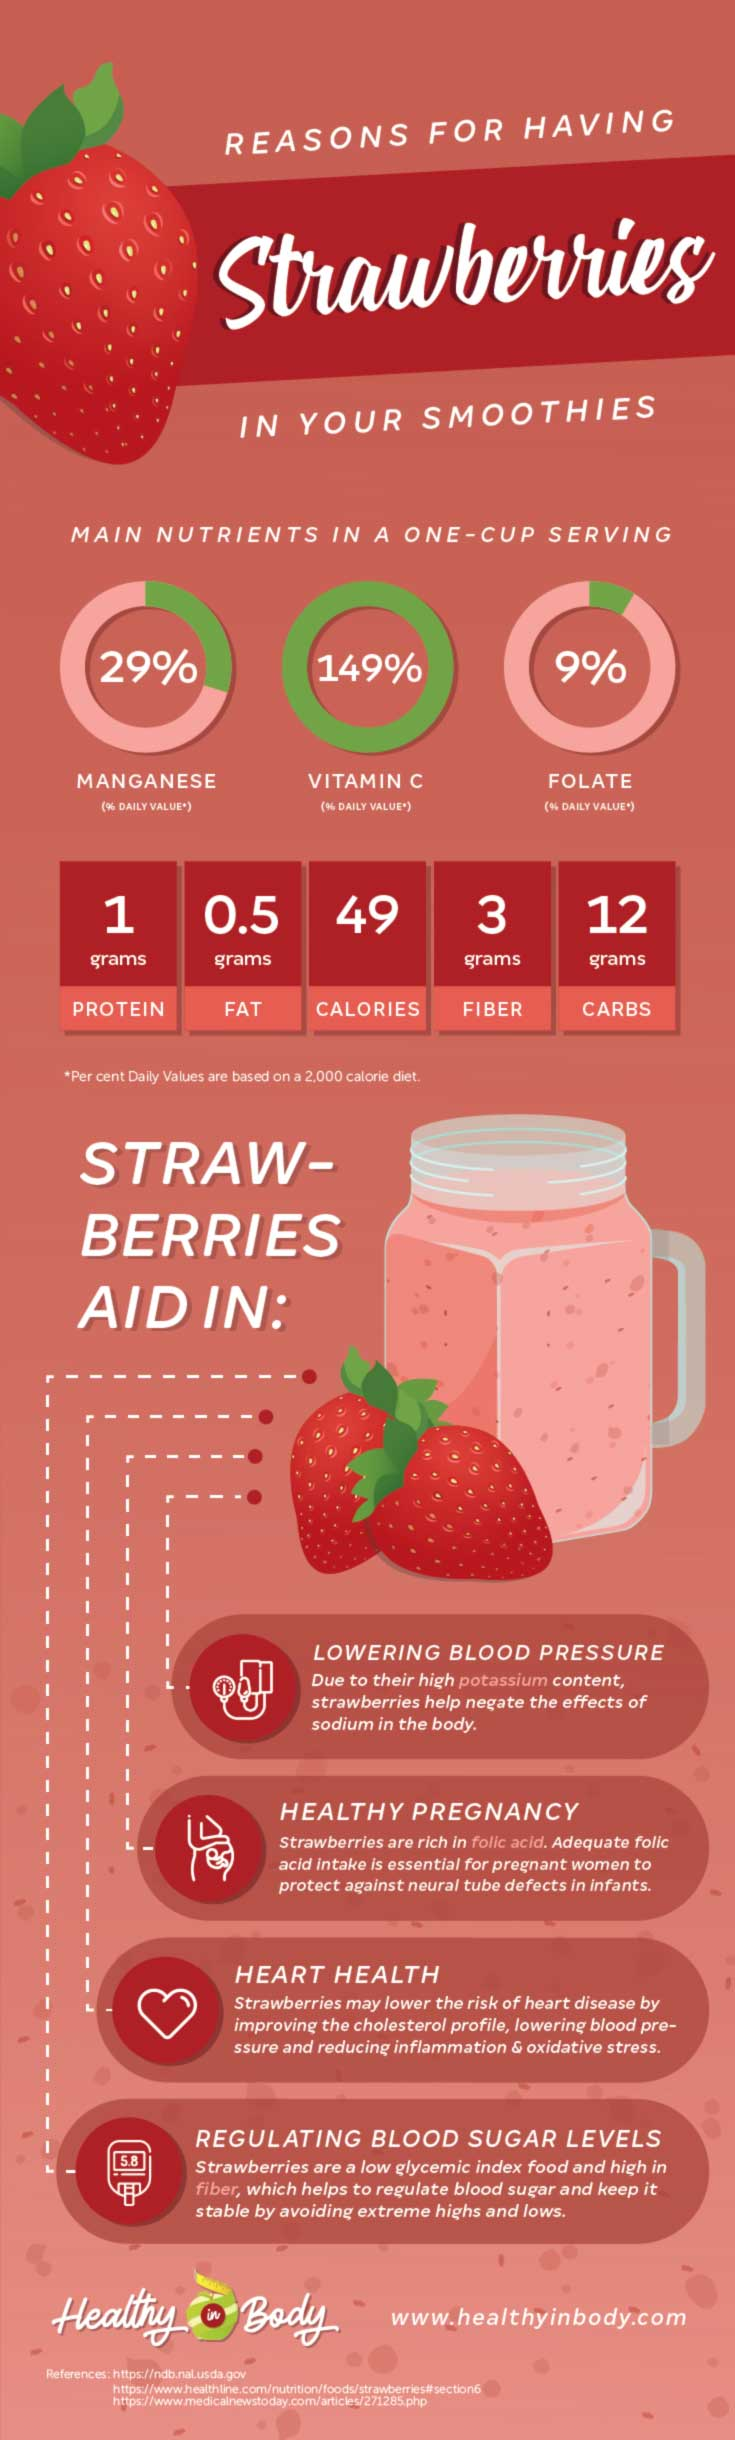 An info-graphic presenting the nutrient content and health benefits of strawberries and an illustration of a couple of strawberries next to a glass of strawberry smoothie